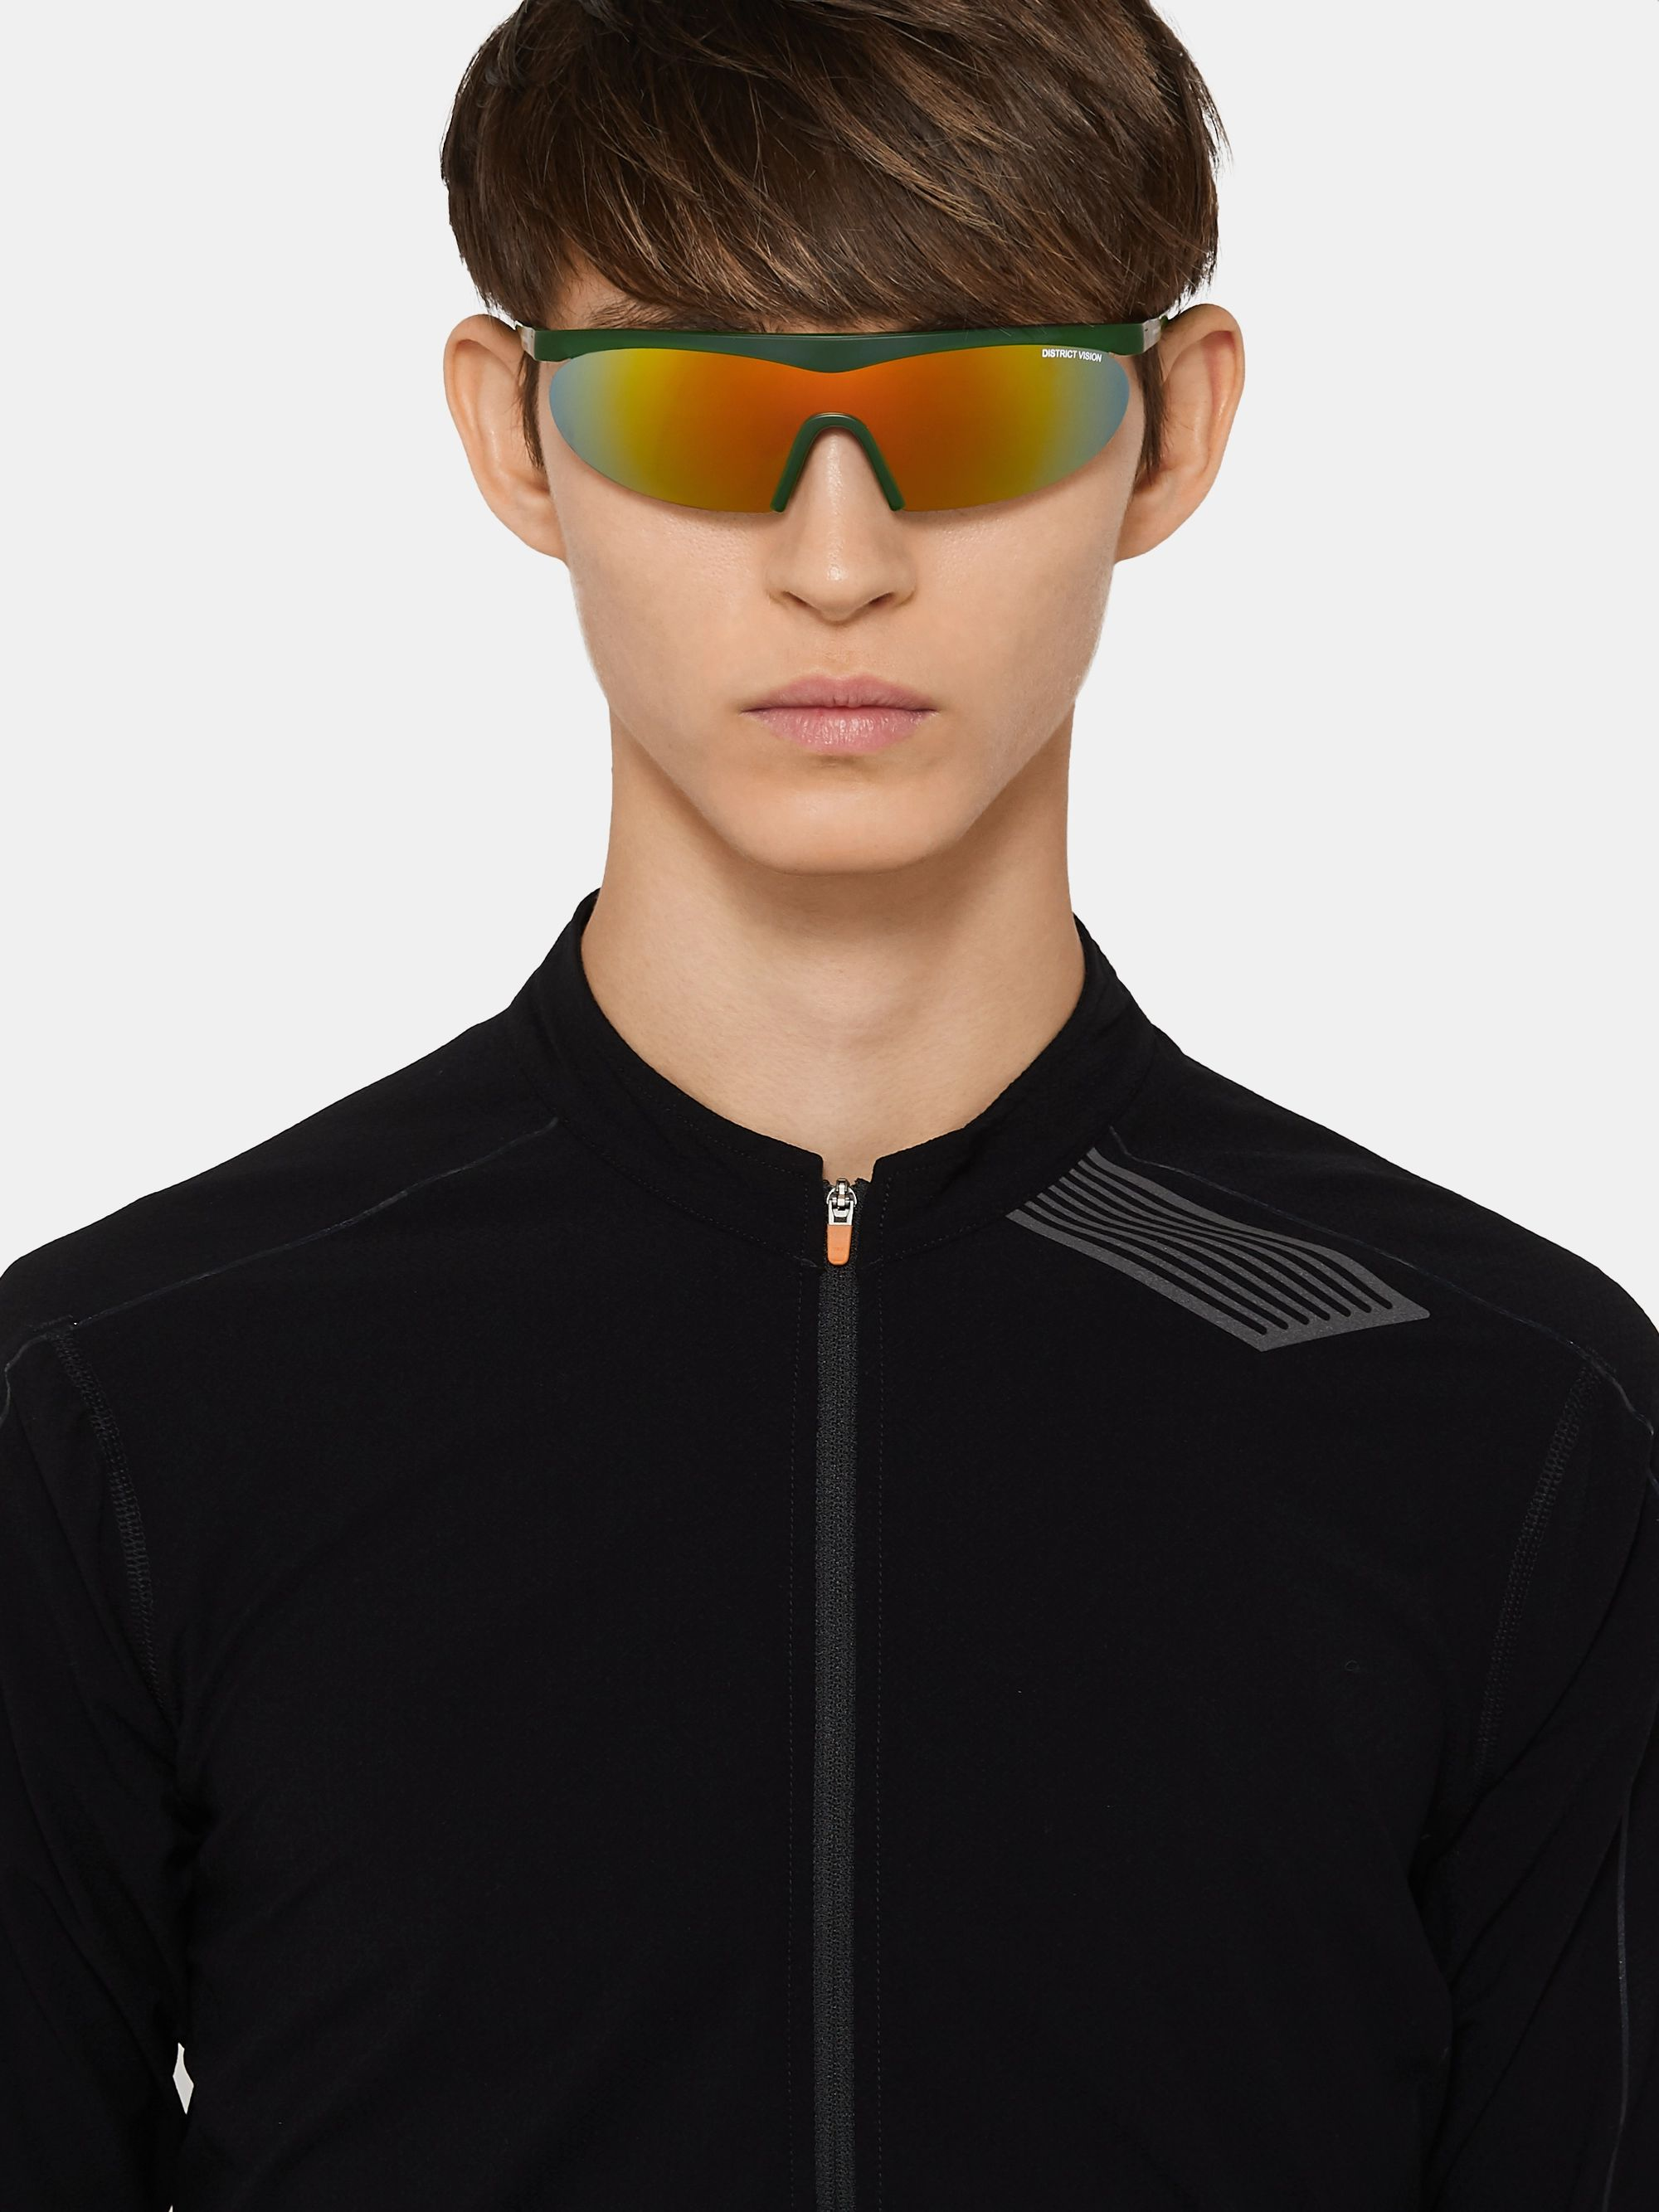 DISTRICT VISION Koharu Polycarbonate and Titanium Sunglasses